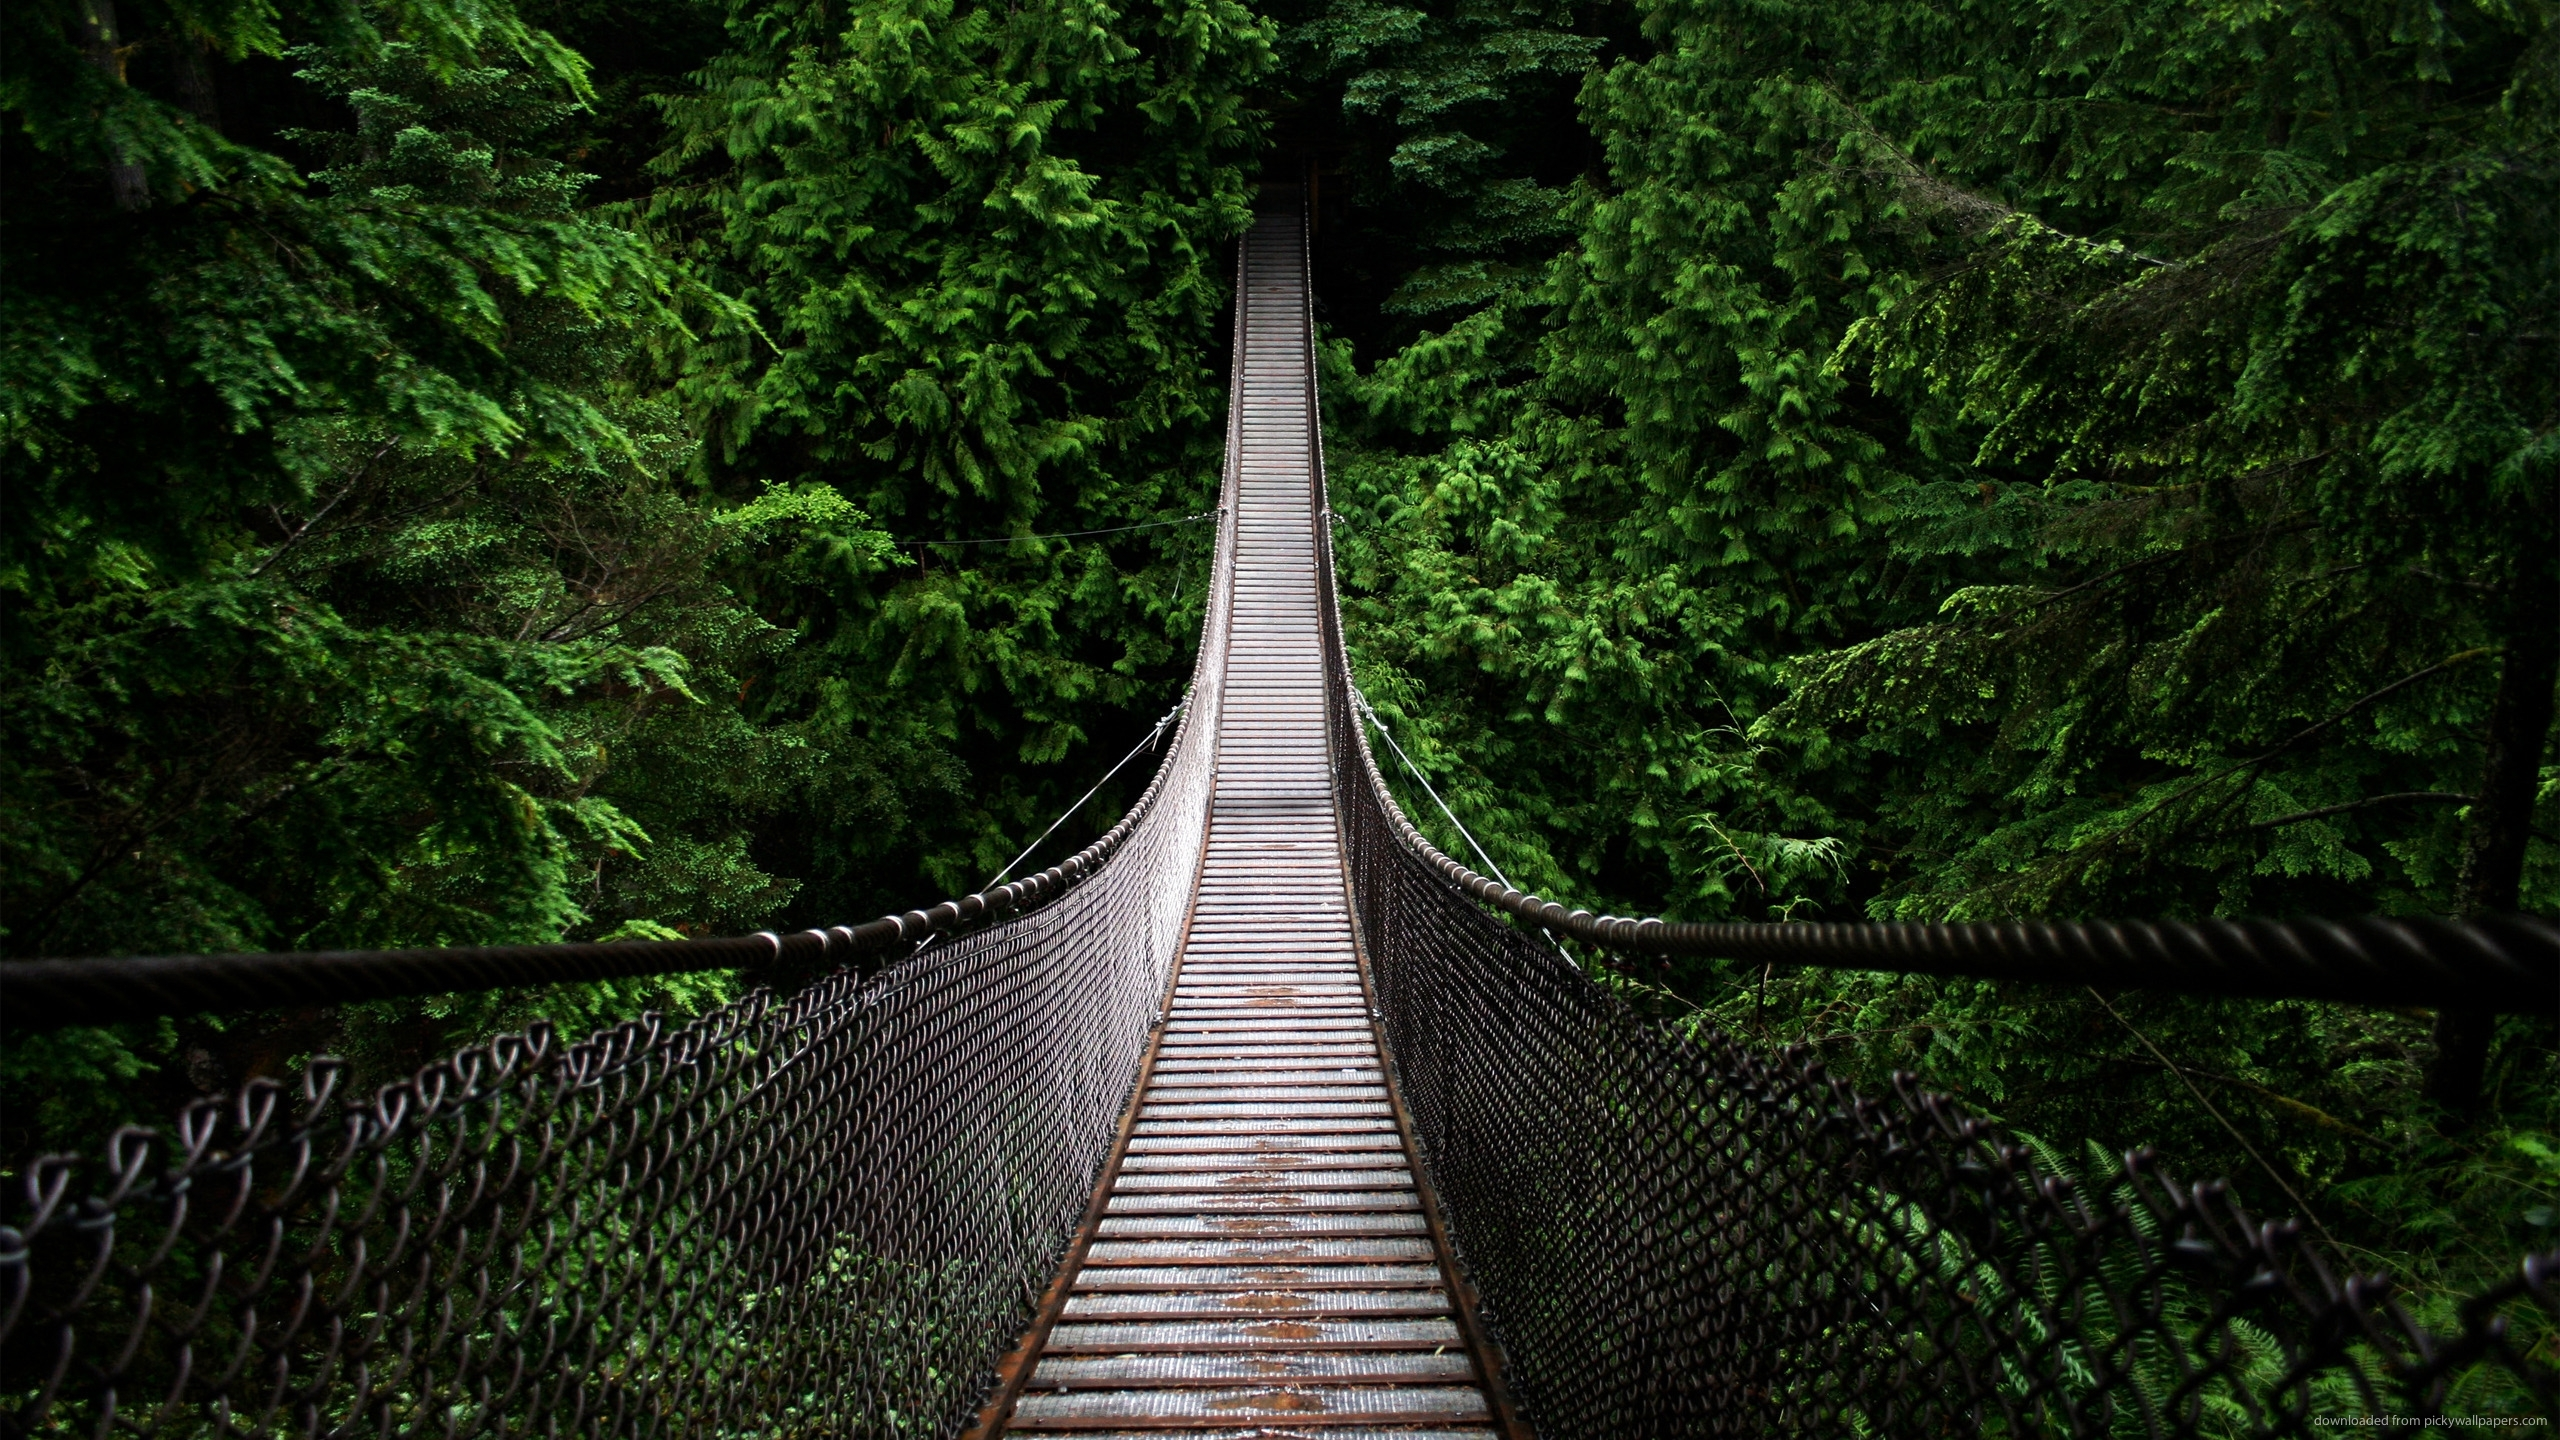 Bridge-into-the-woods-for-x-wallpaper-wpc5803050